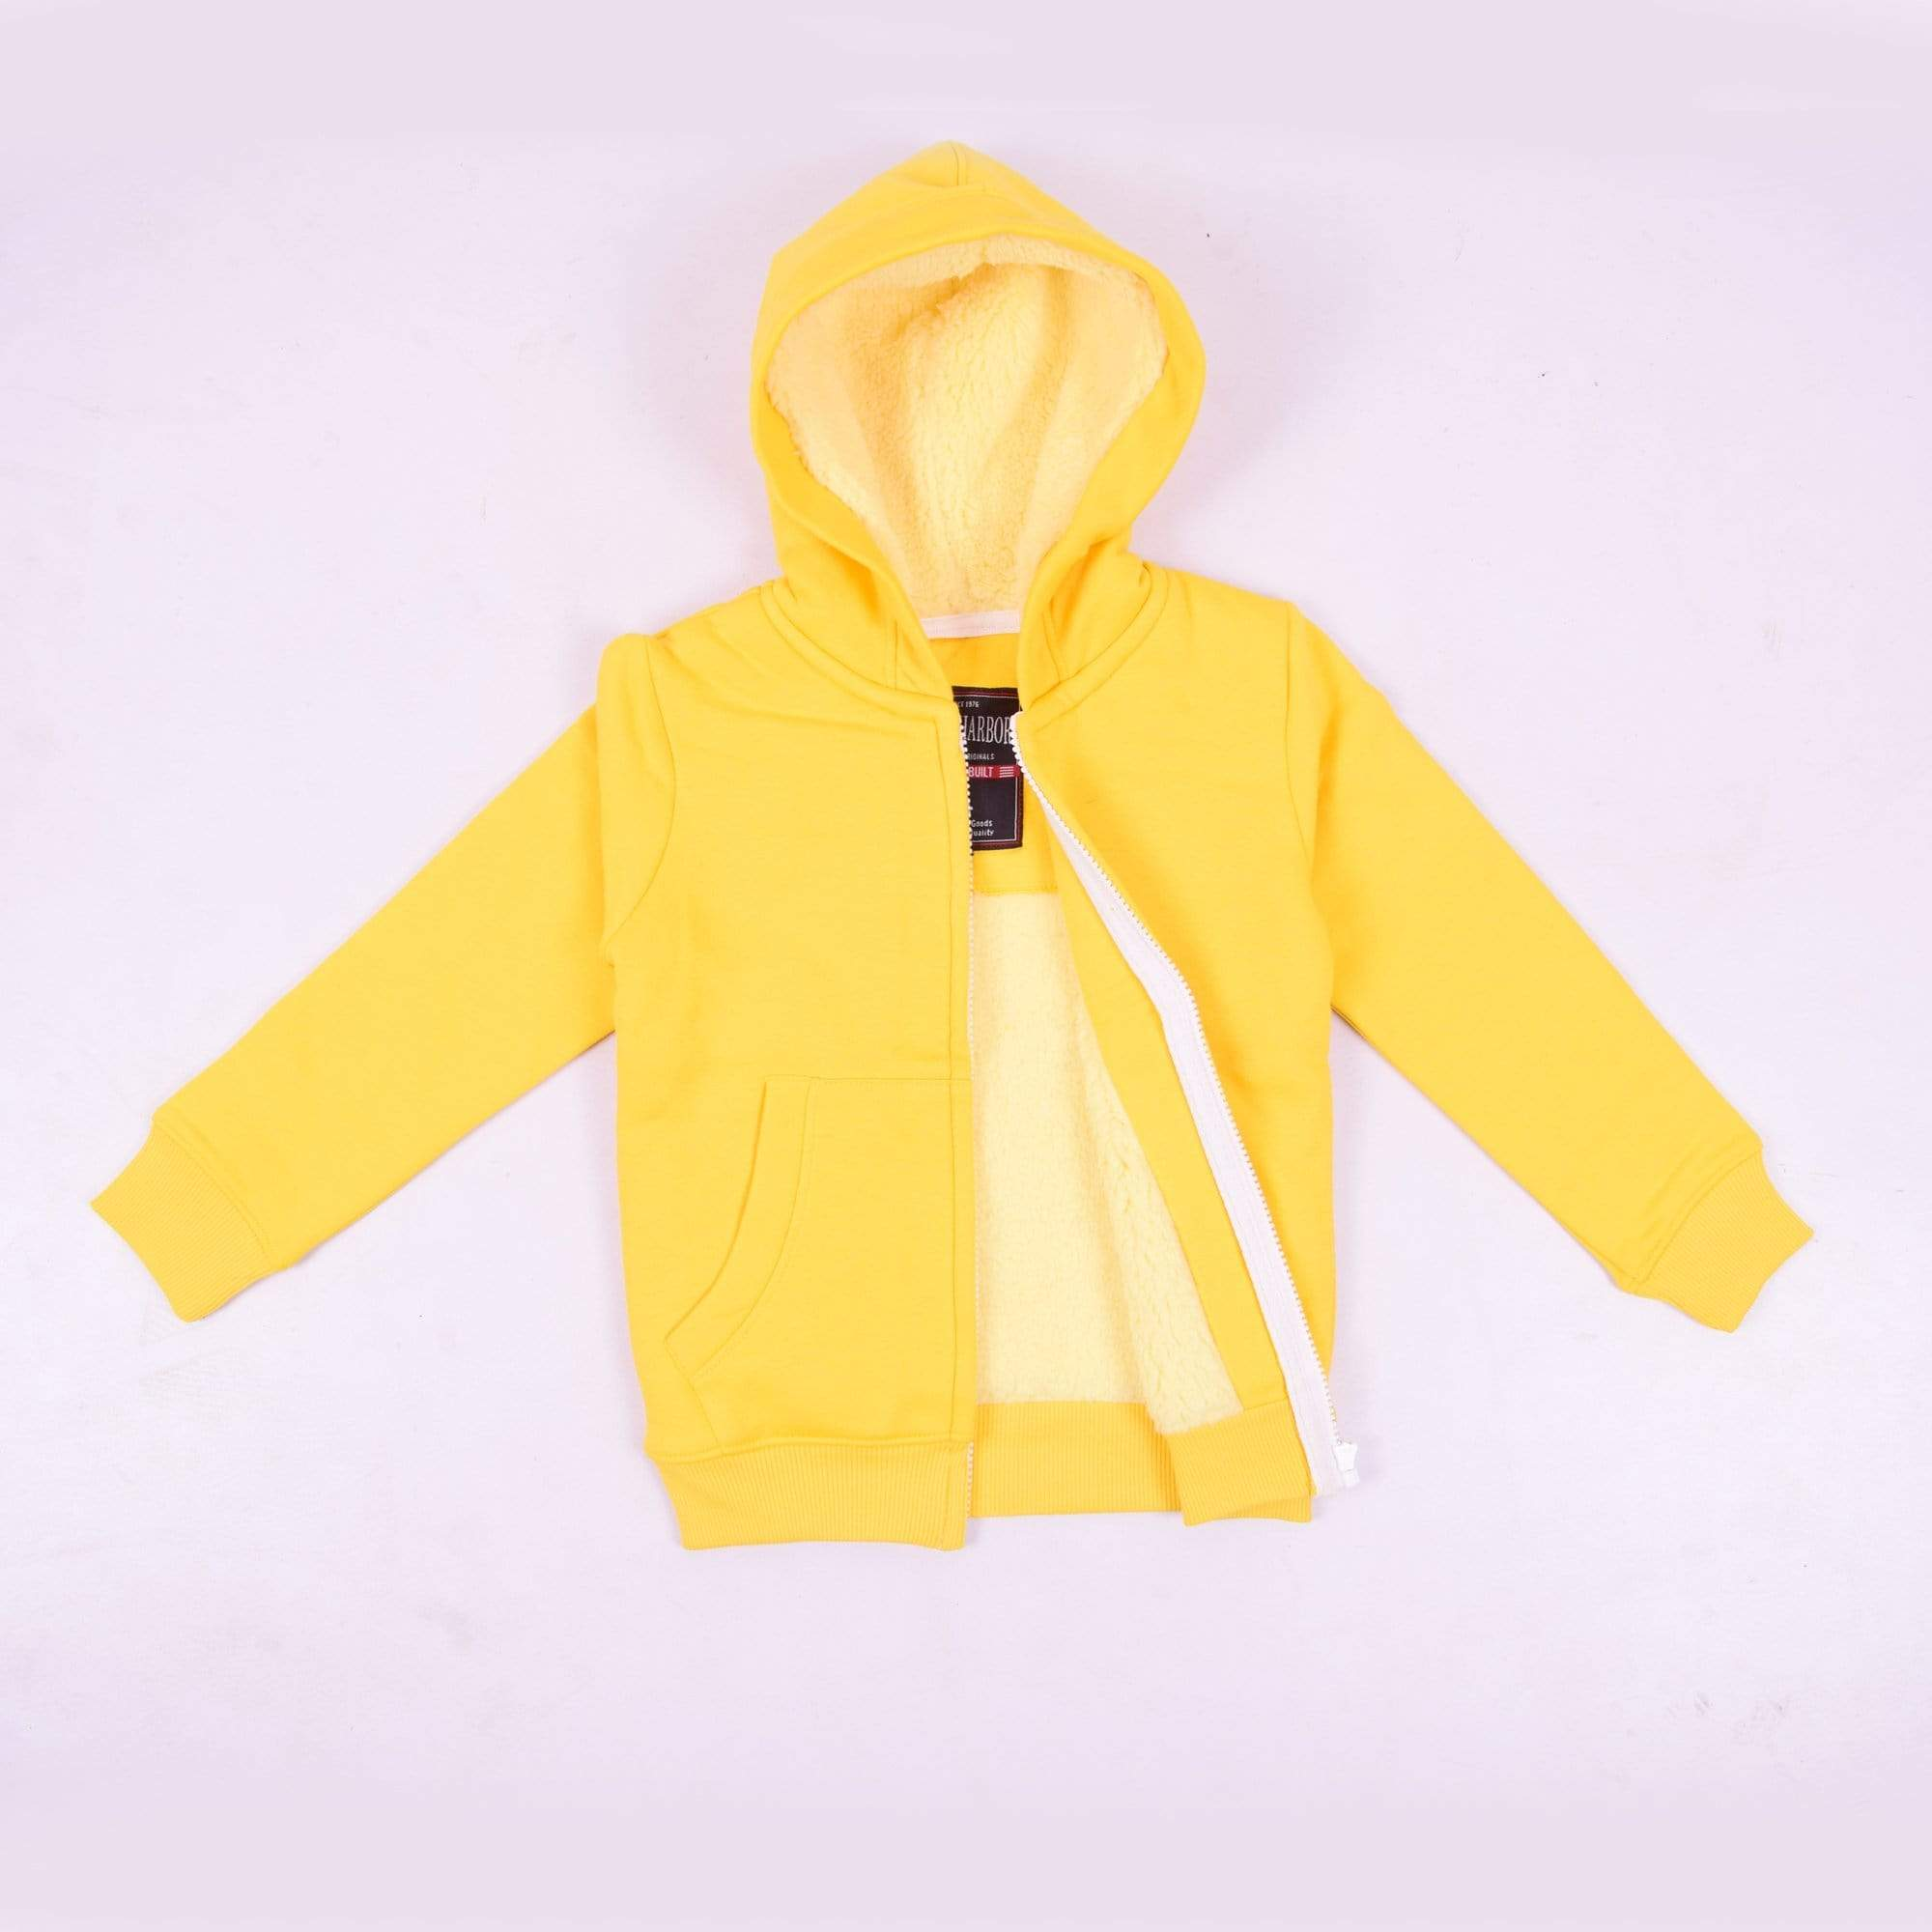 Stone Harbor Kid's Hoodie Yellow / 2-3 Years Girl's Stone Harbor Sunflow Fur Lined Zipper Hoodie